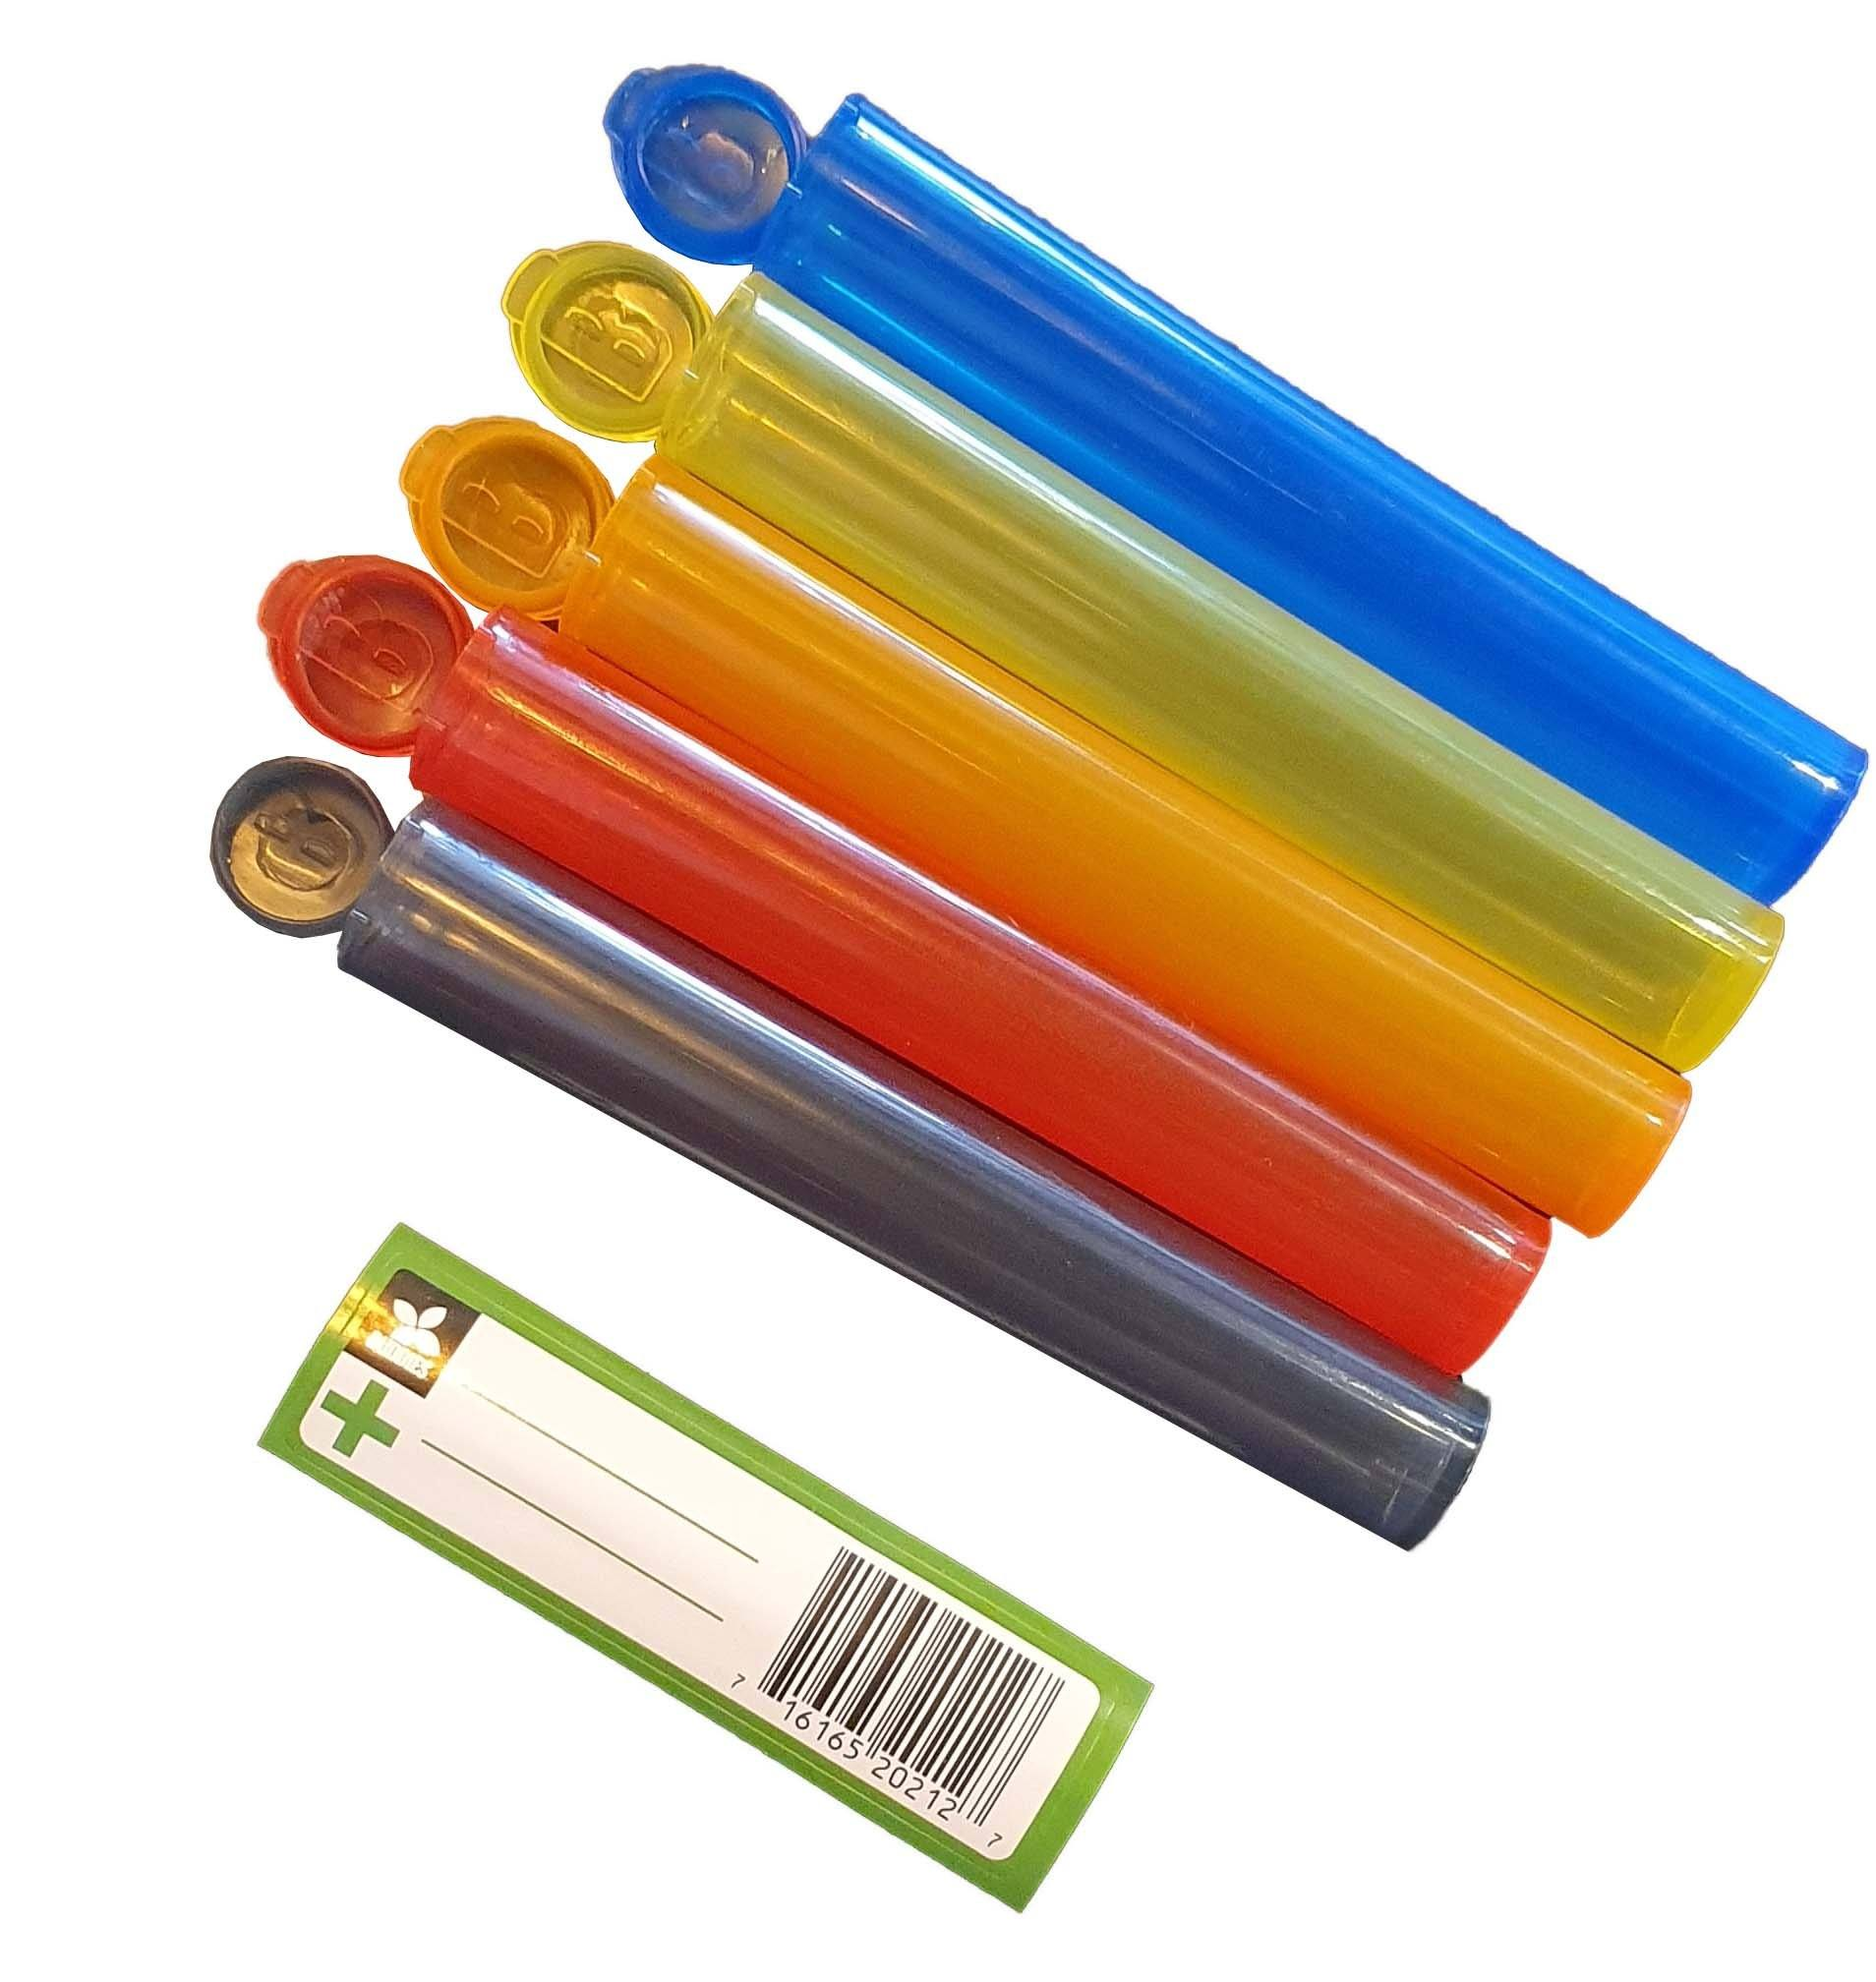 Buddies_Torpedoes_Cone_Tubes_Jointhüllen_Colors_cbd-store-shop-luxemburg